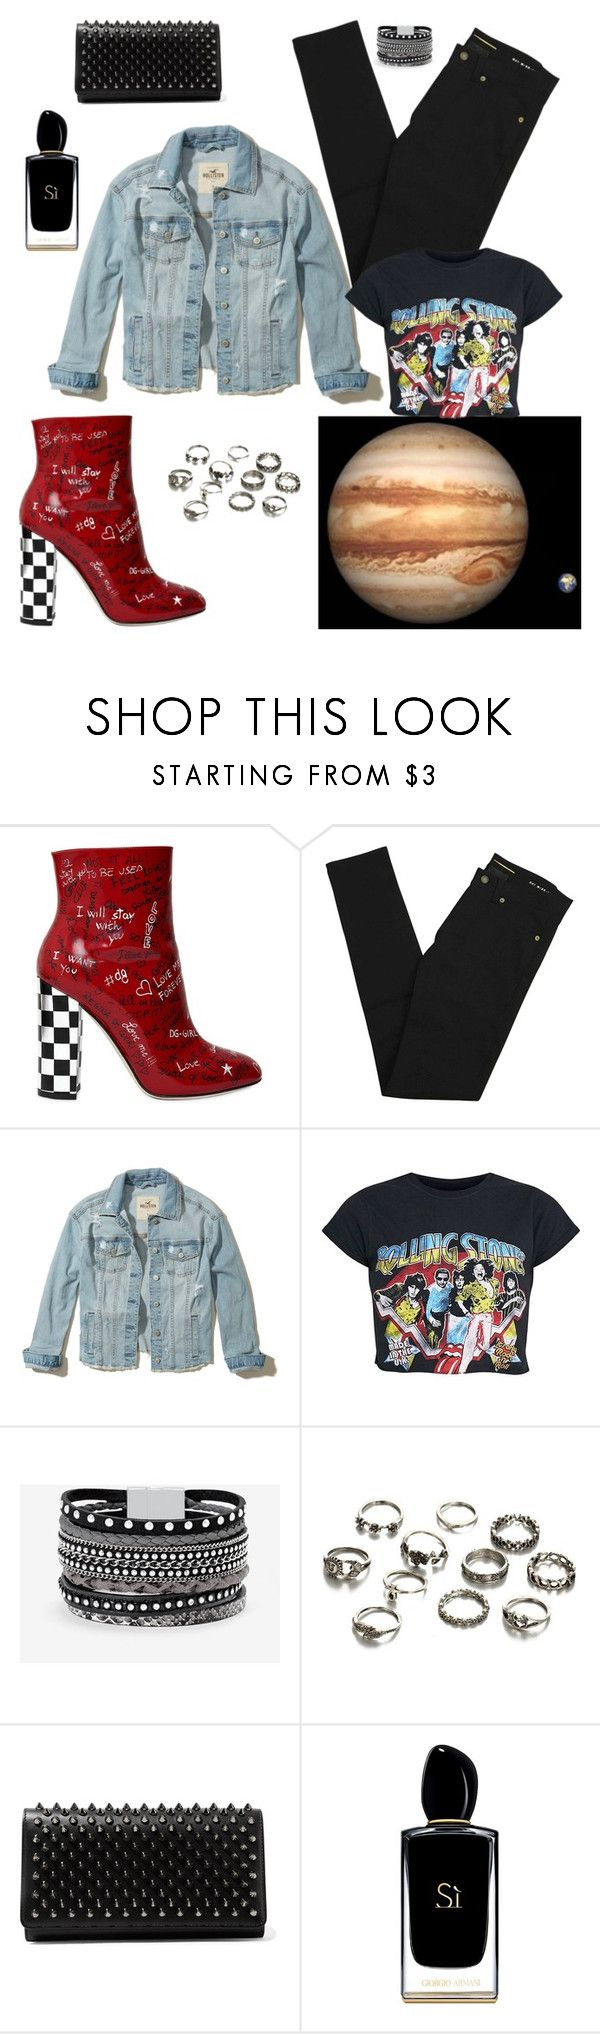 """Jupiter Rising..."" by nancybcrtn ❤ liked on Polyvore featuring Dolce&Gabbana, Yves Saint Laurent, Hollister Co., White House Black Market, Christian Louboutin and Giorgio Armani"